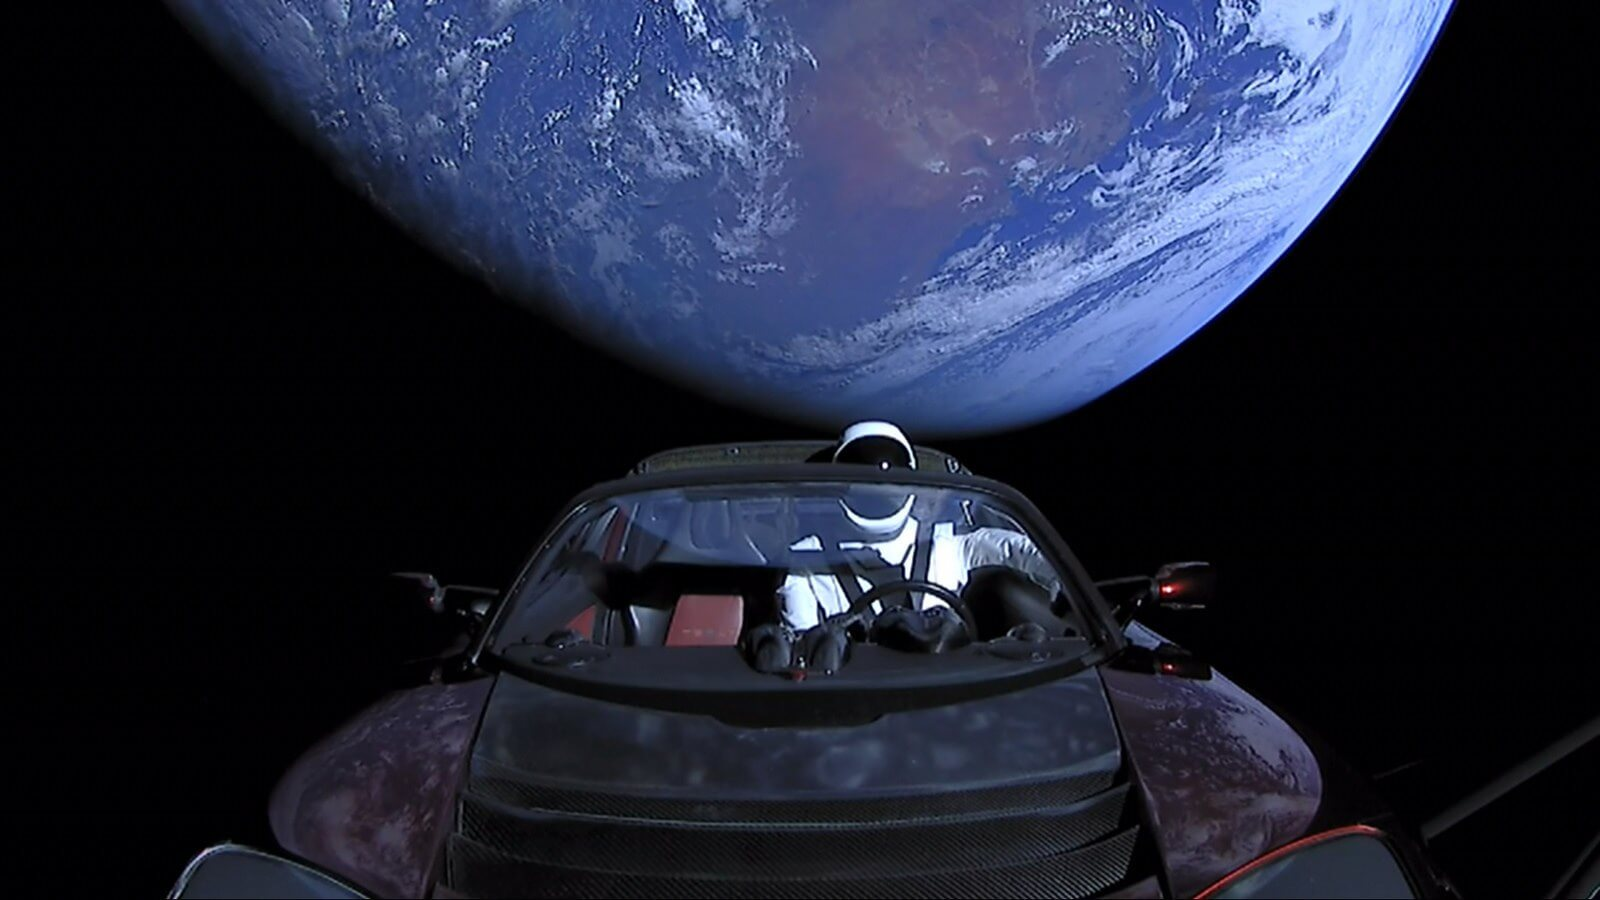 Elon Musk's Tesla Roadster Just Floated Past Mars